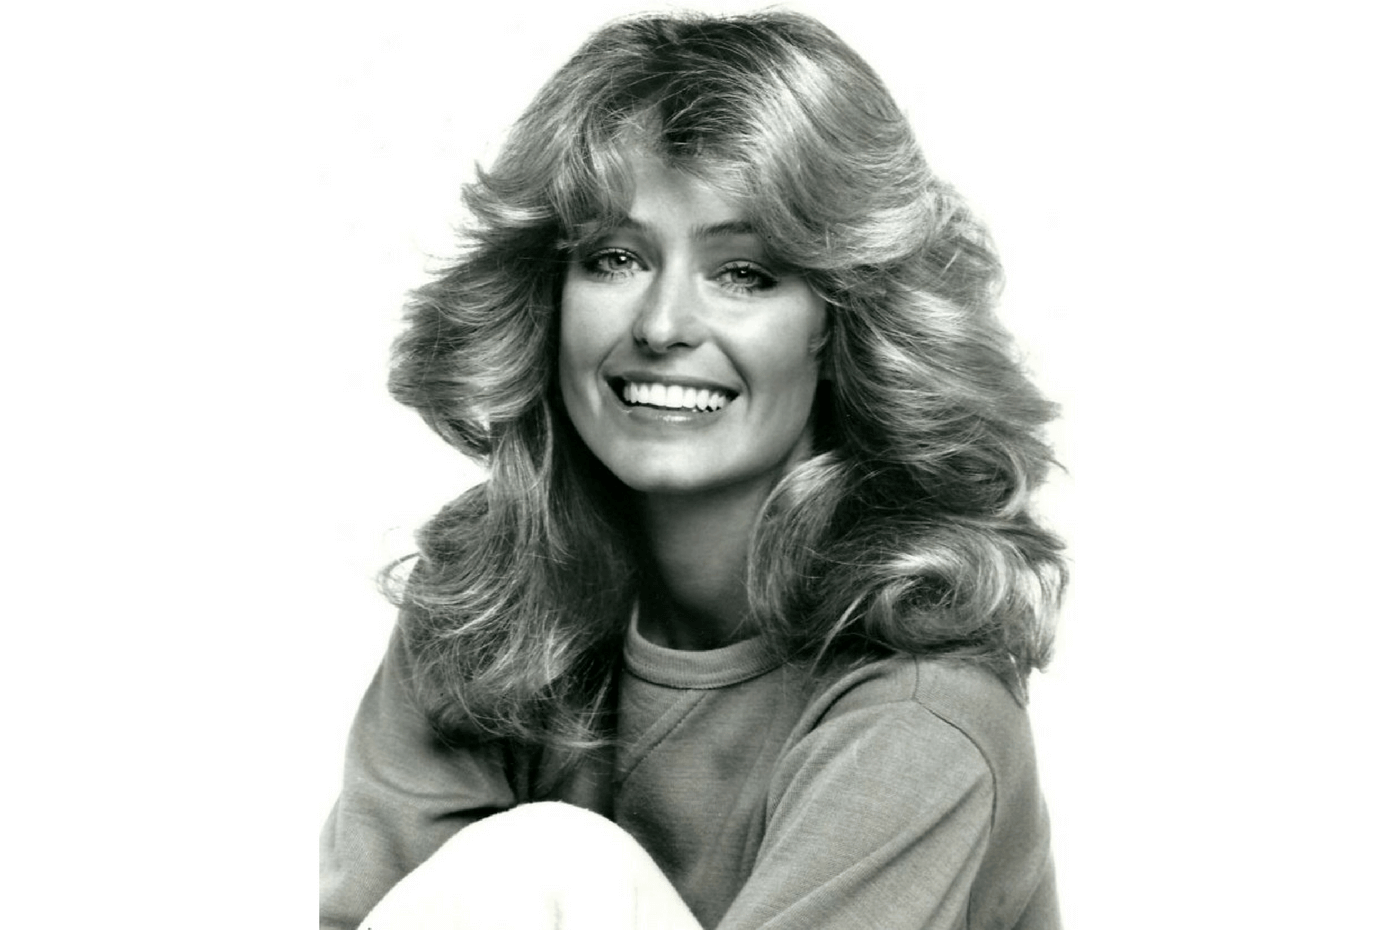 Farrah Fawcett's feathered hairdo helped her become a 1970s style icon.